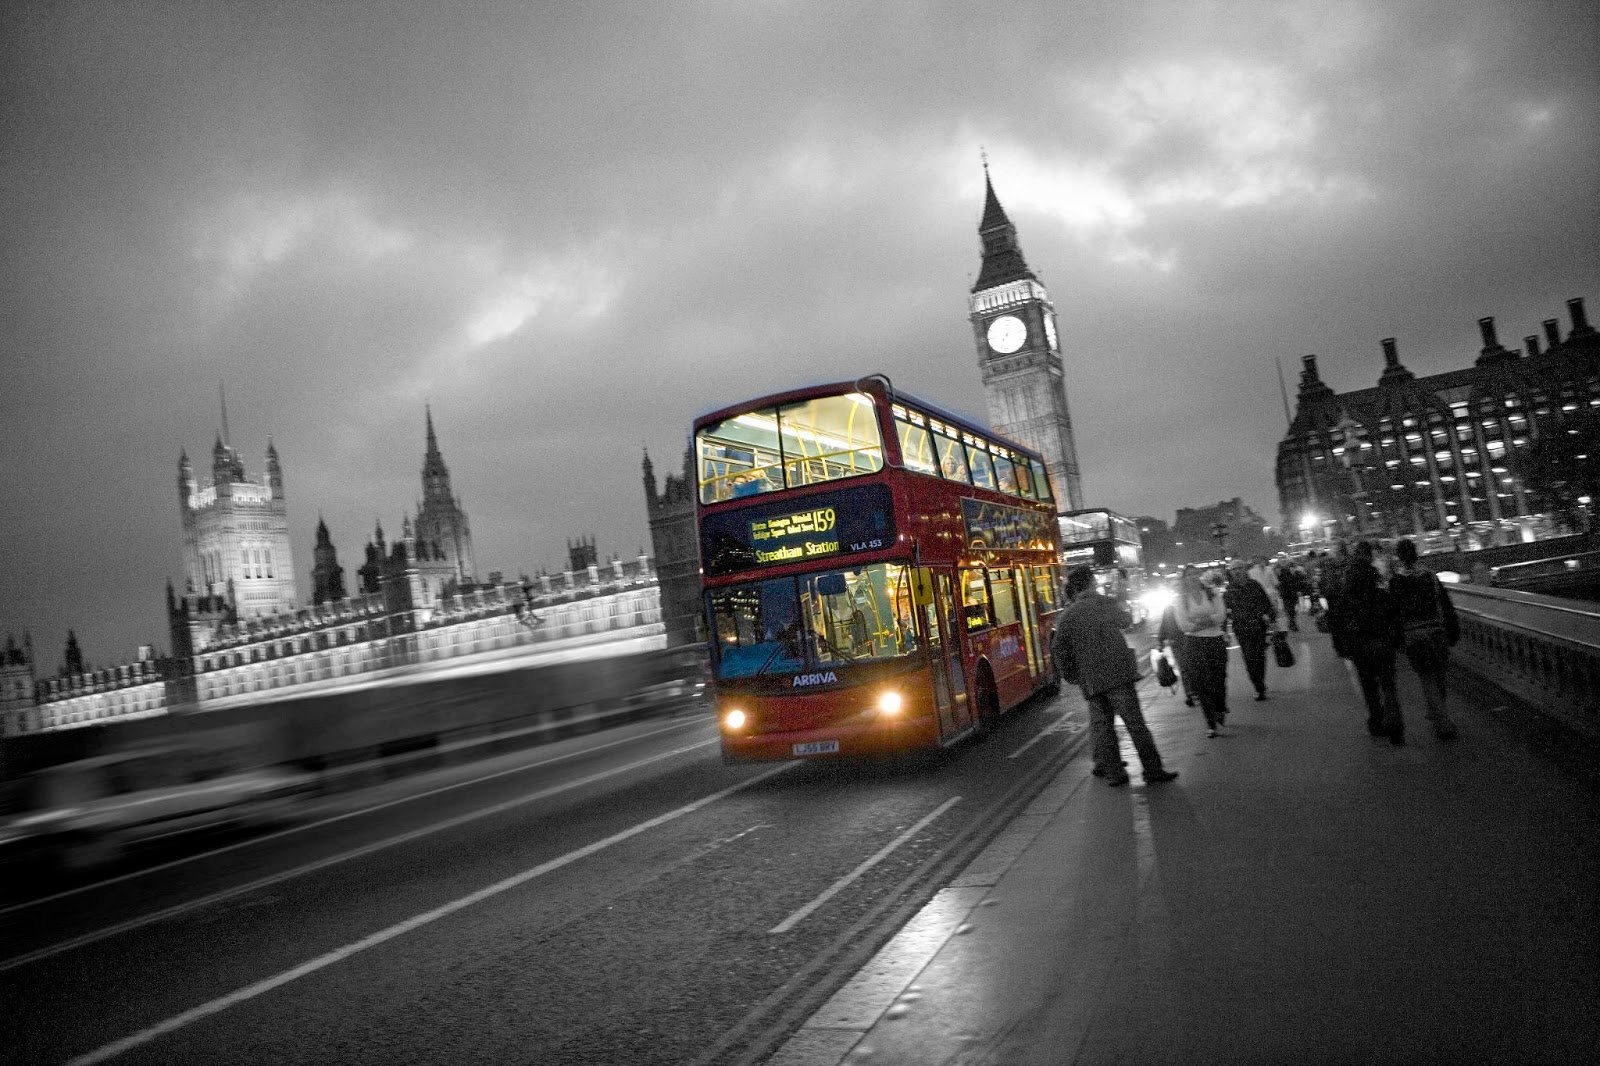 London bus black and white photography with color Black and White 1600x1066